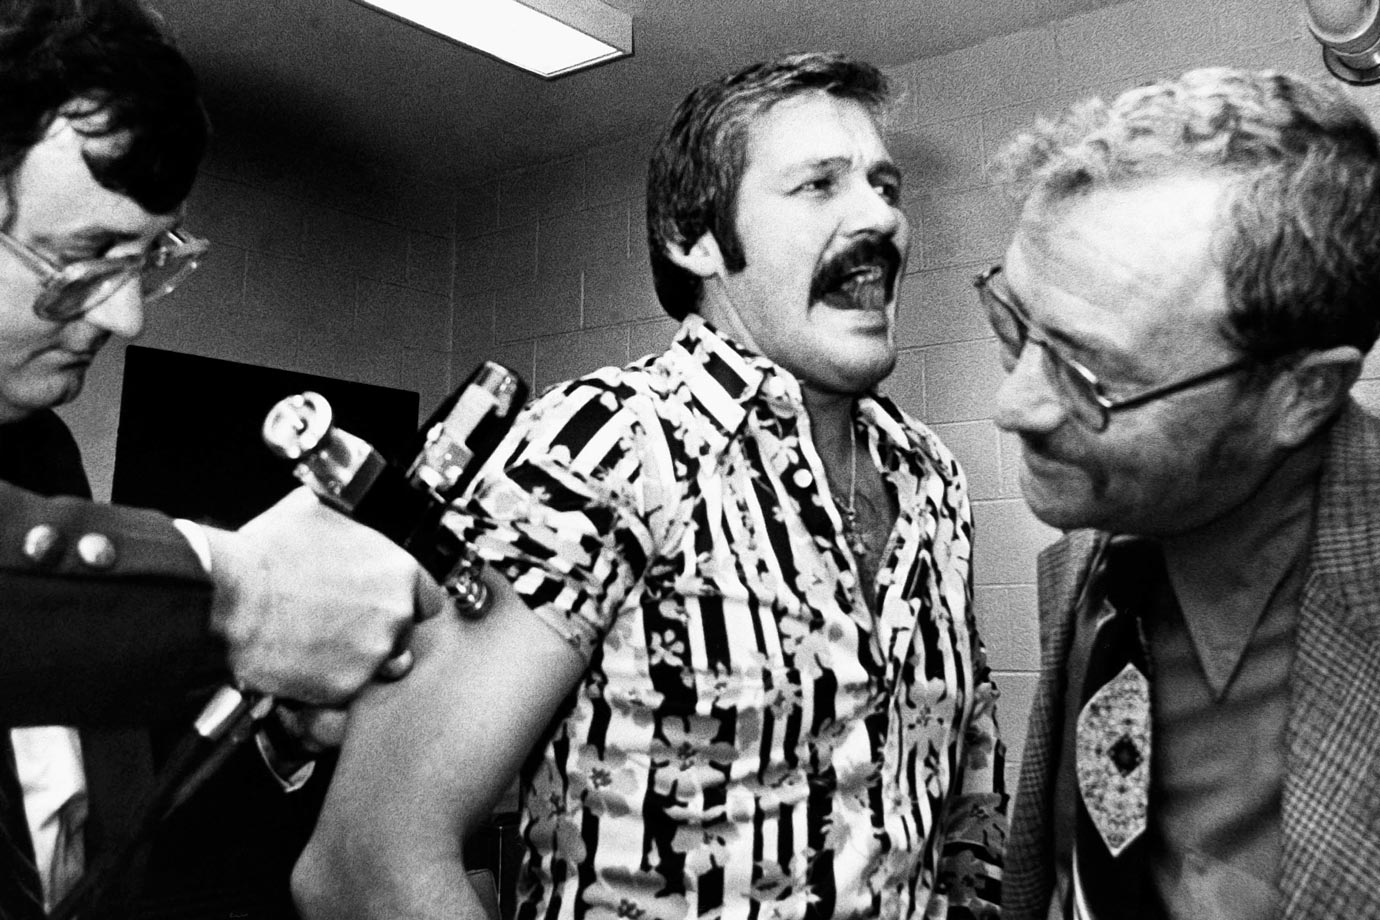 One shot managed to get by Bernie Parent, as he reacts to getting a swine flu immunization shot while Flyers coach Fred Shero watches smiling on Oct. 25, 1976 in Philadelphia.